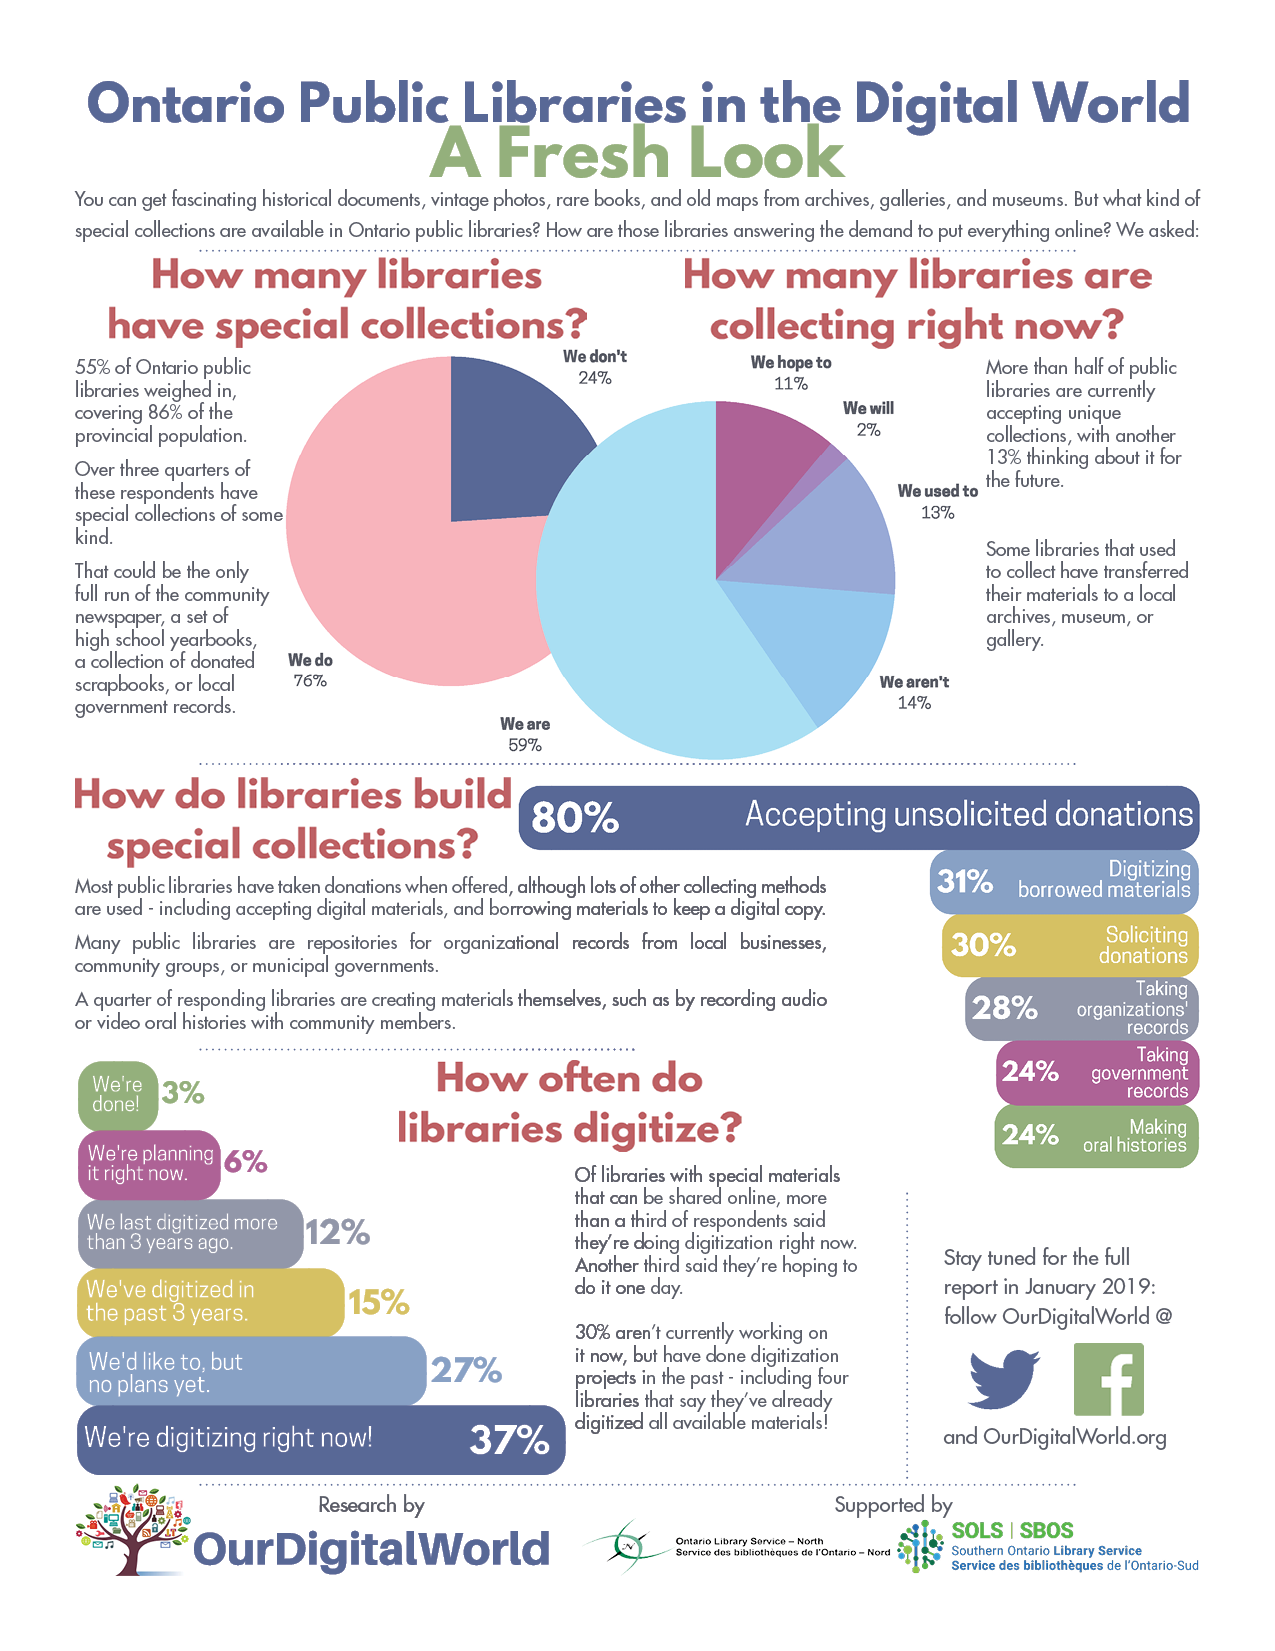 ODW-DigitizationInOntarioPublicLibraries-FactSheet